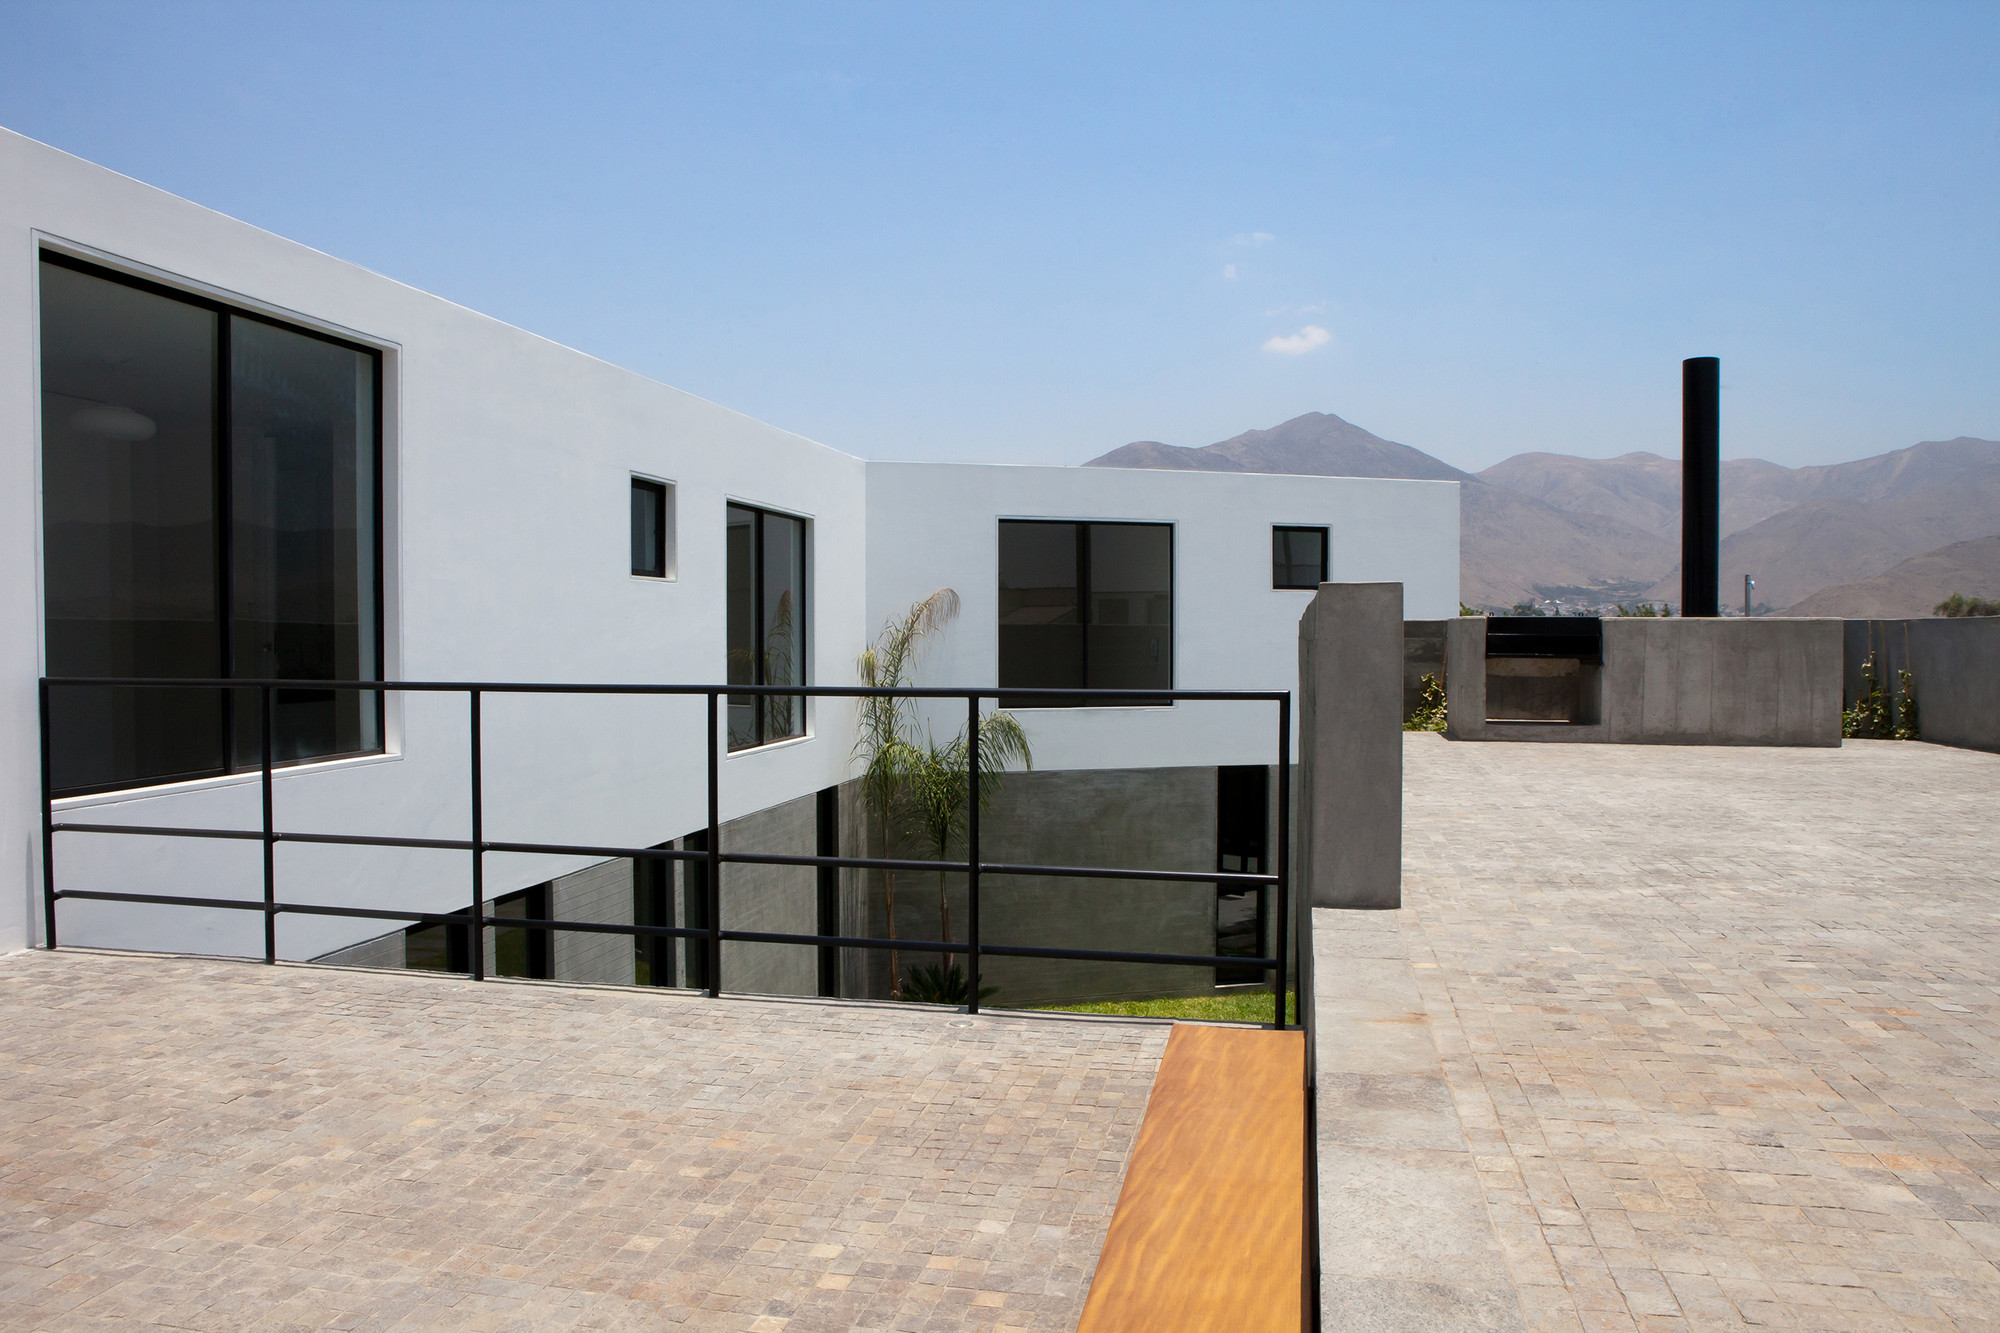 Surrounded  House / 2.8x arquitectos, © Javier Florez